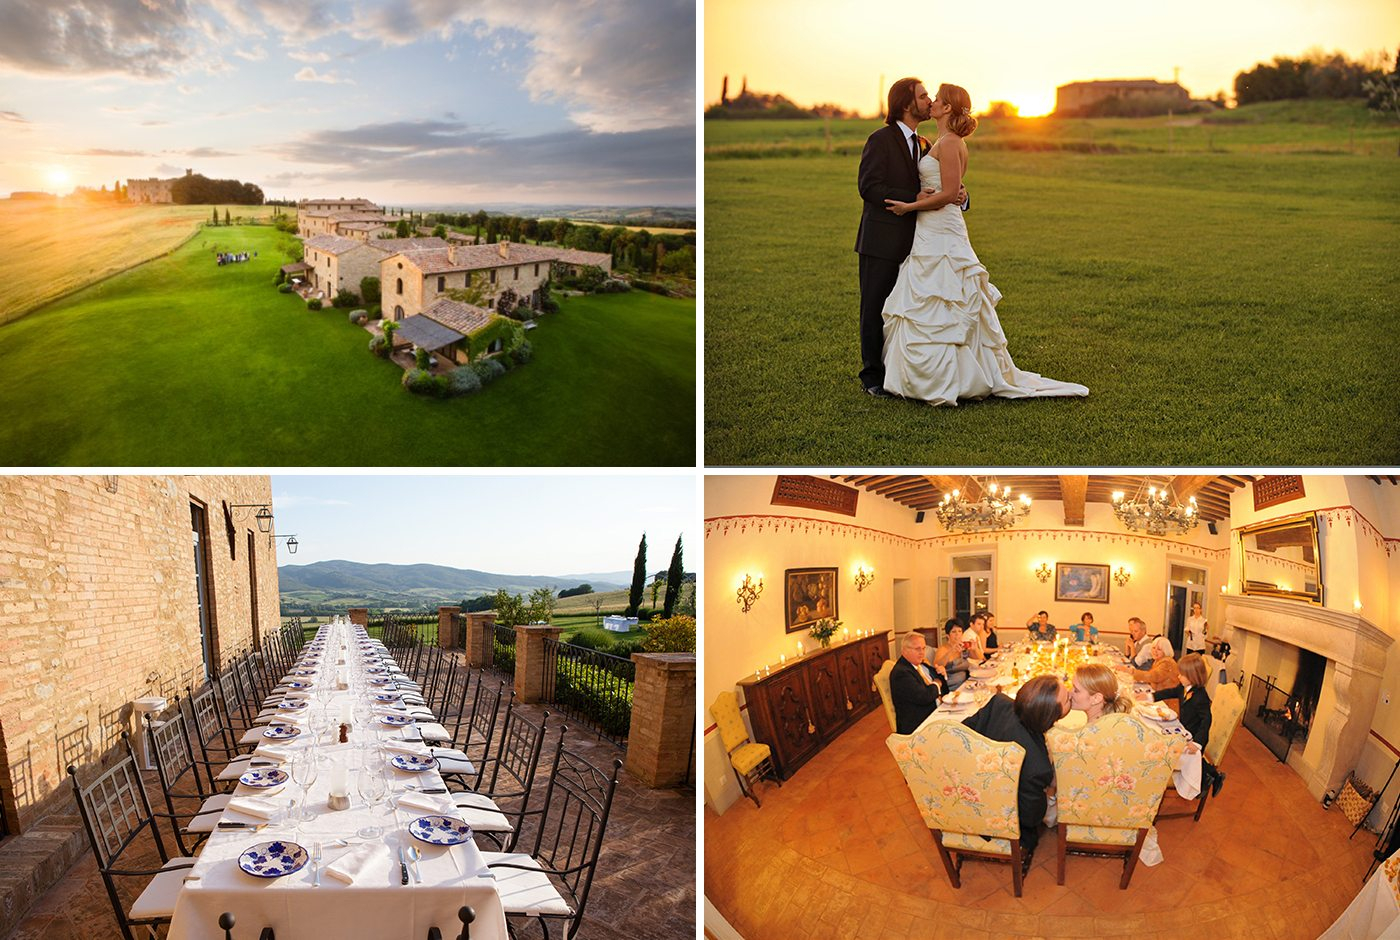 borgo weddings